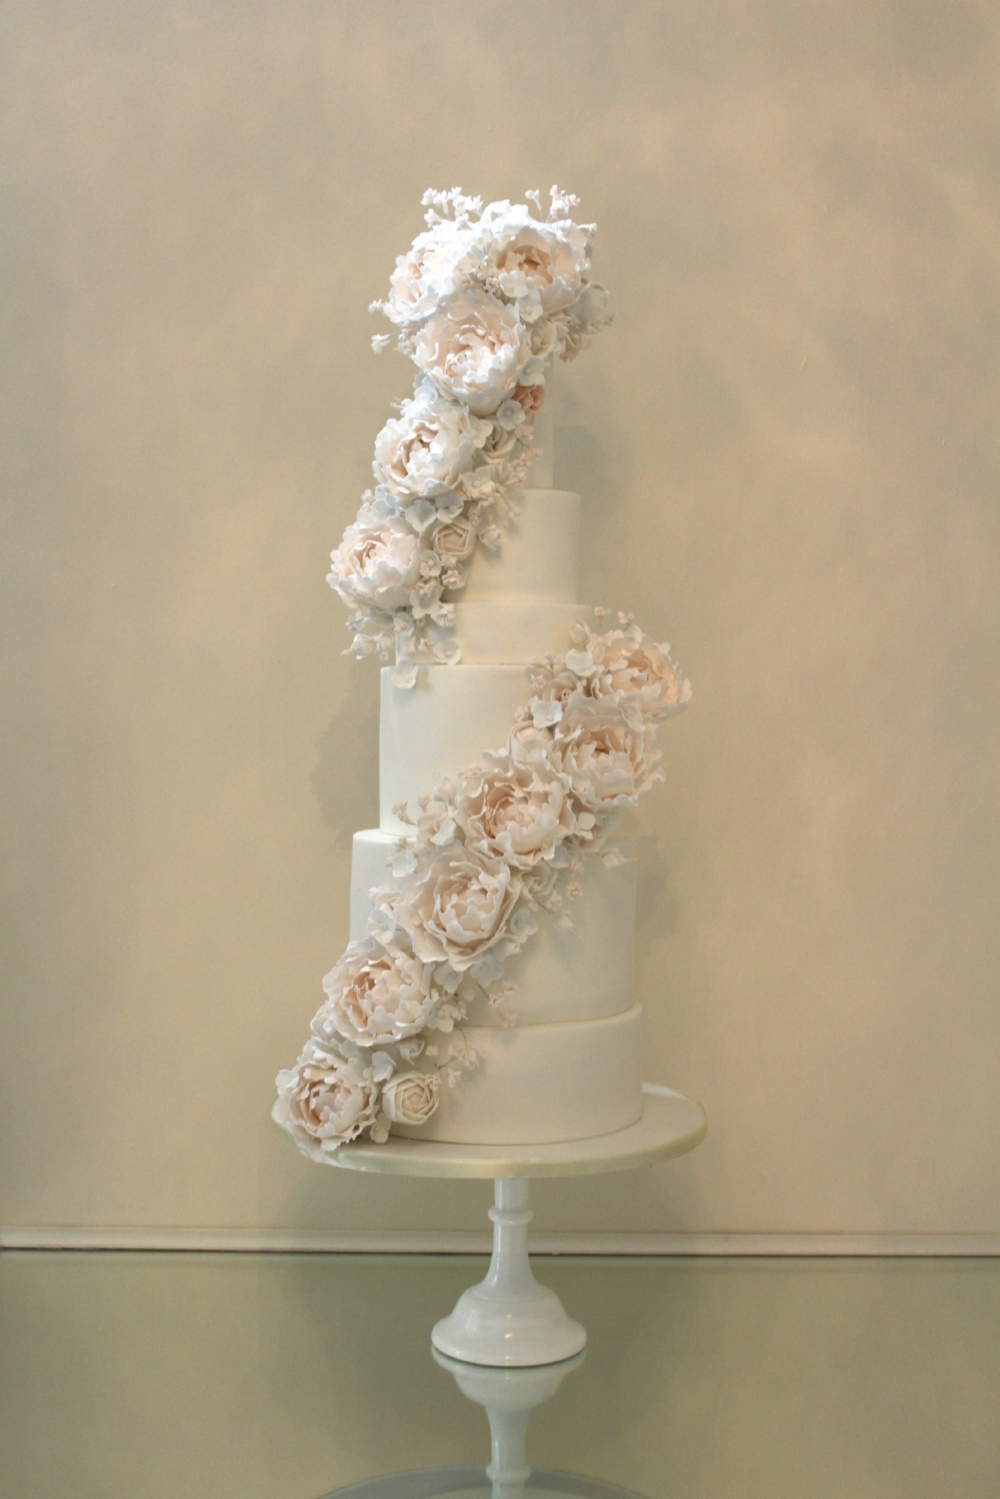 rosewood cakes - jordana events - bridal garden - glasgow - high end weddings